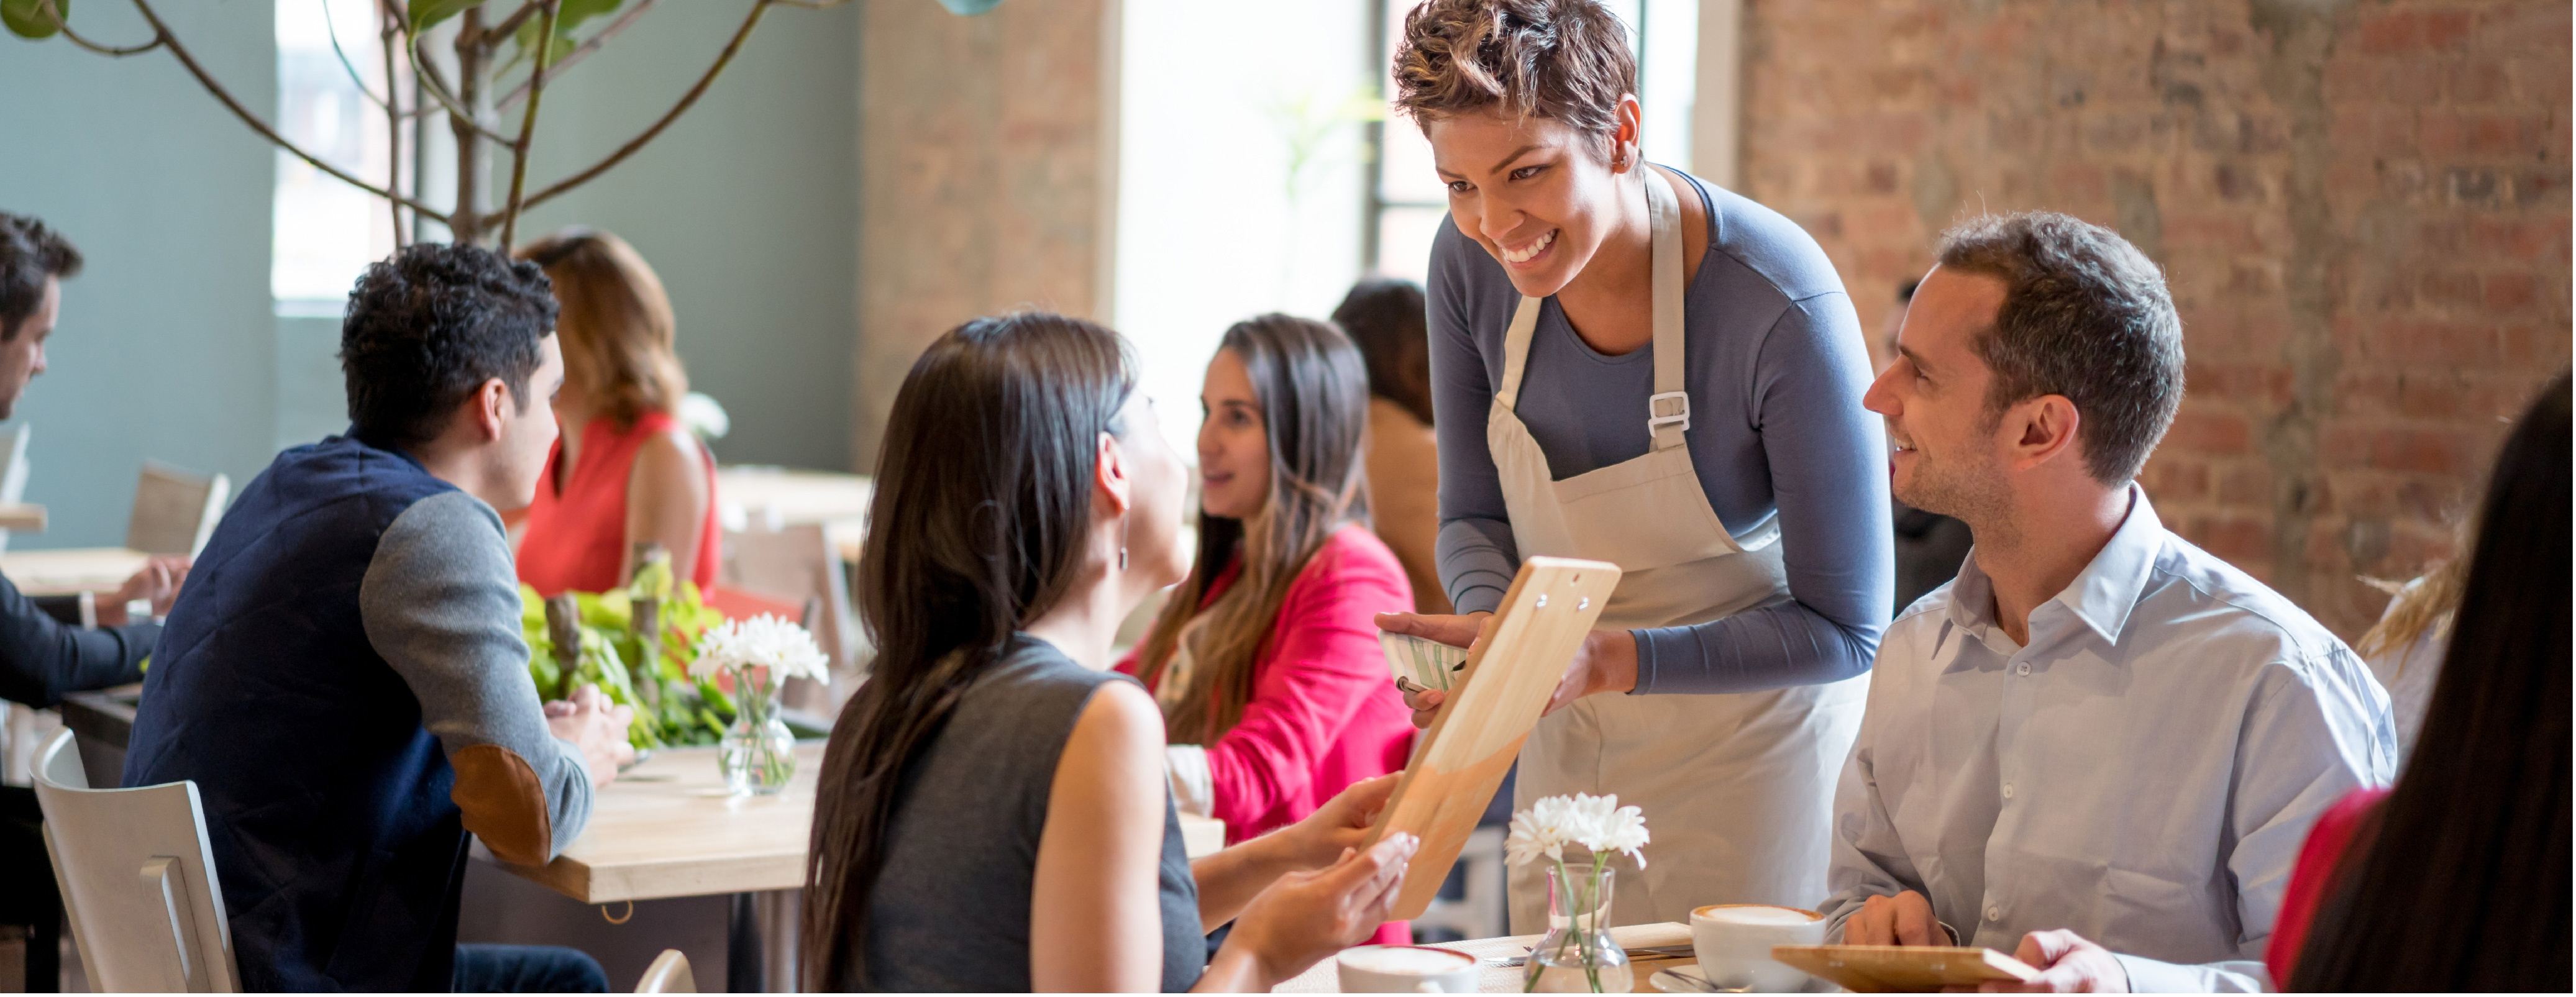 3 Best Practices to Managing your Restaurant Inventory